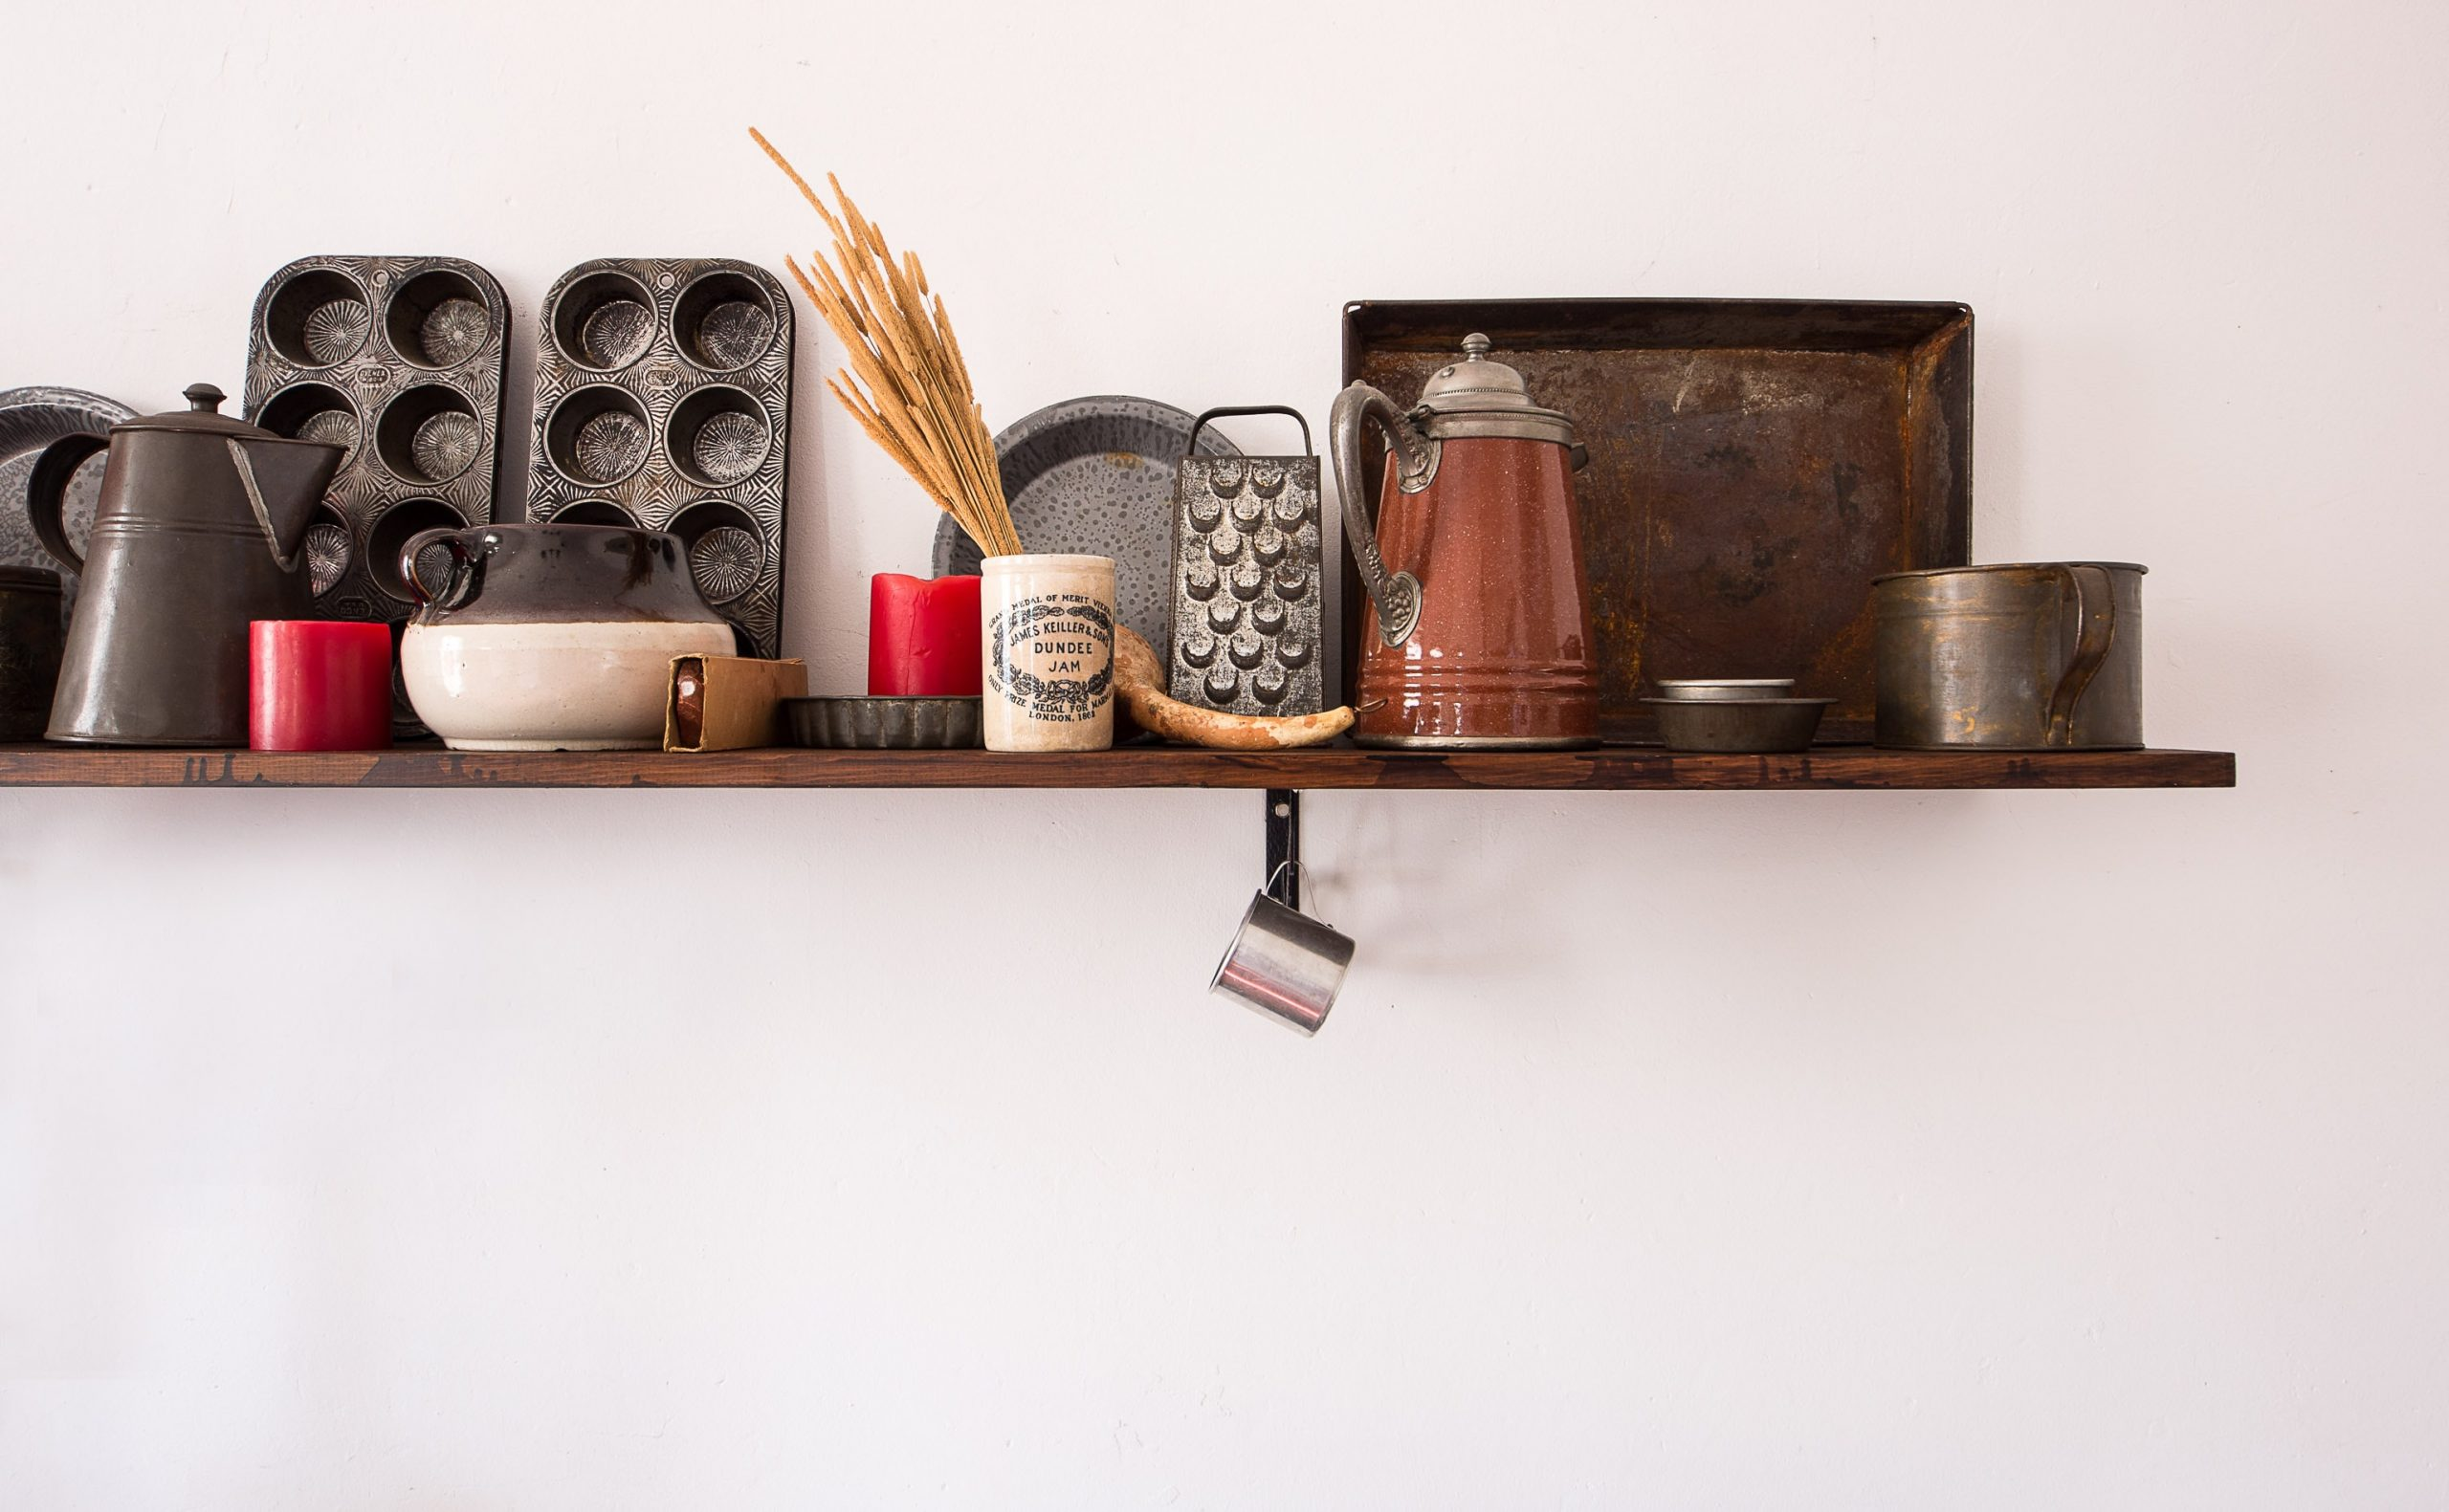 kitchen shelf packed with old farmhouse kitchen utensils, Creating Farmhouse Chic With Your Interior